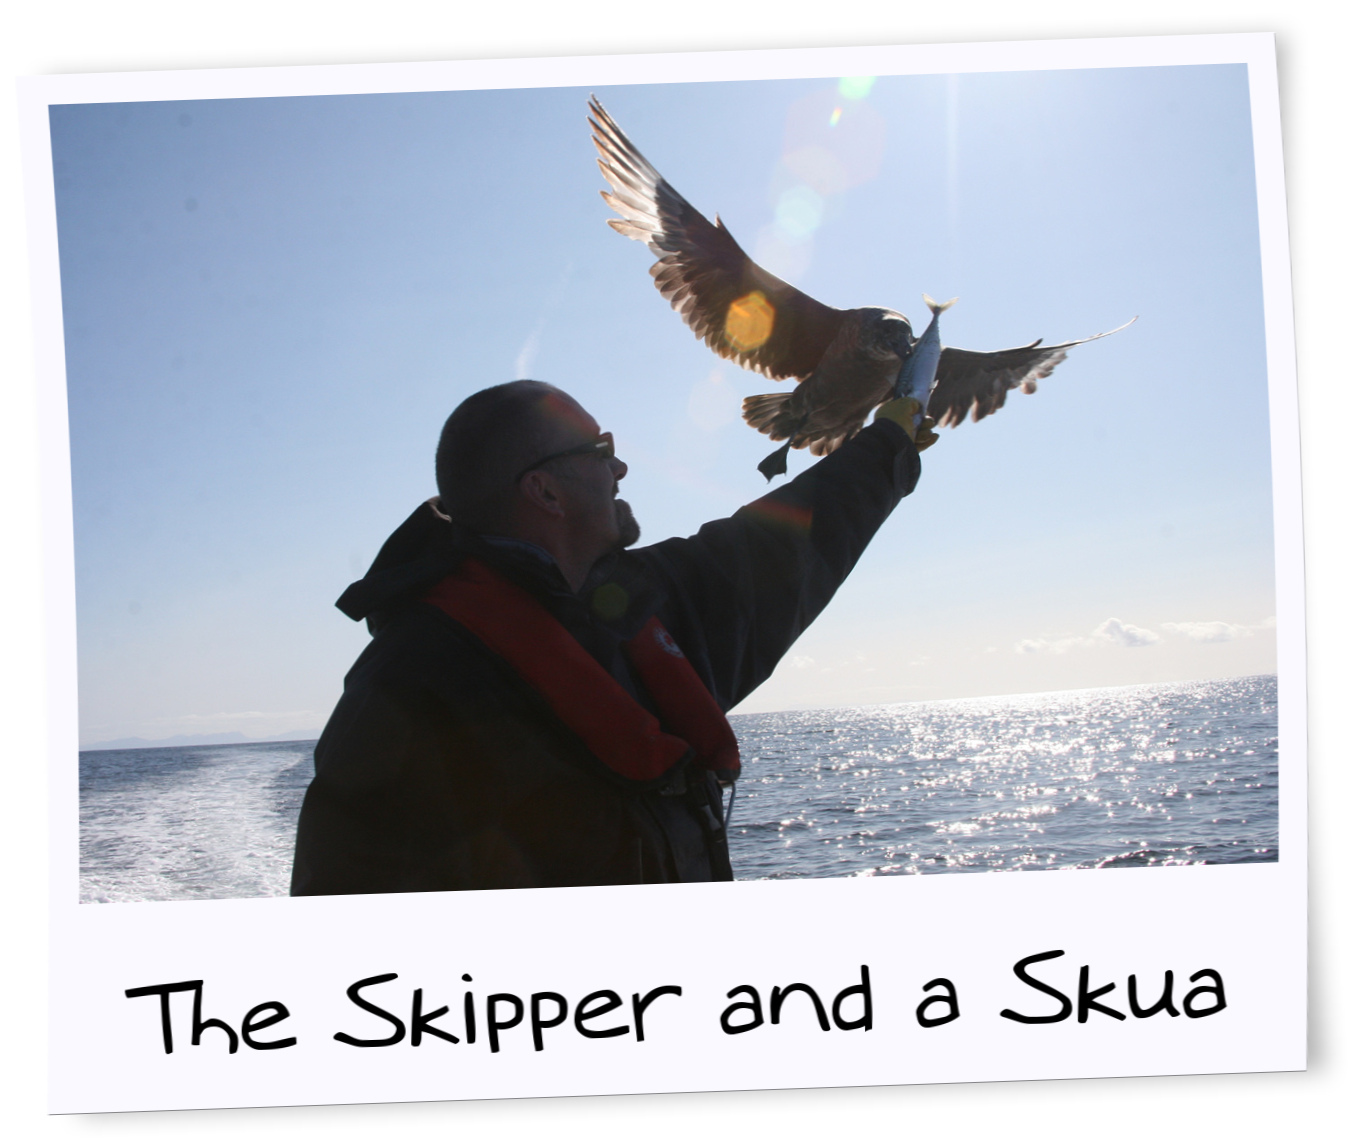 The skipper and a skua